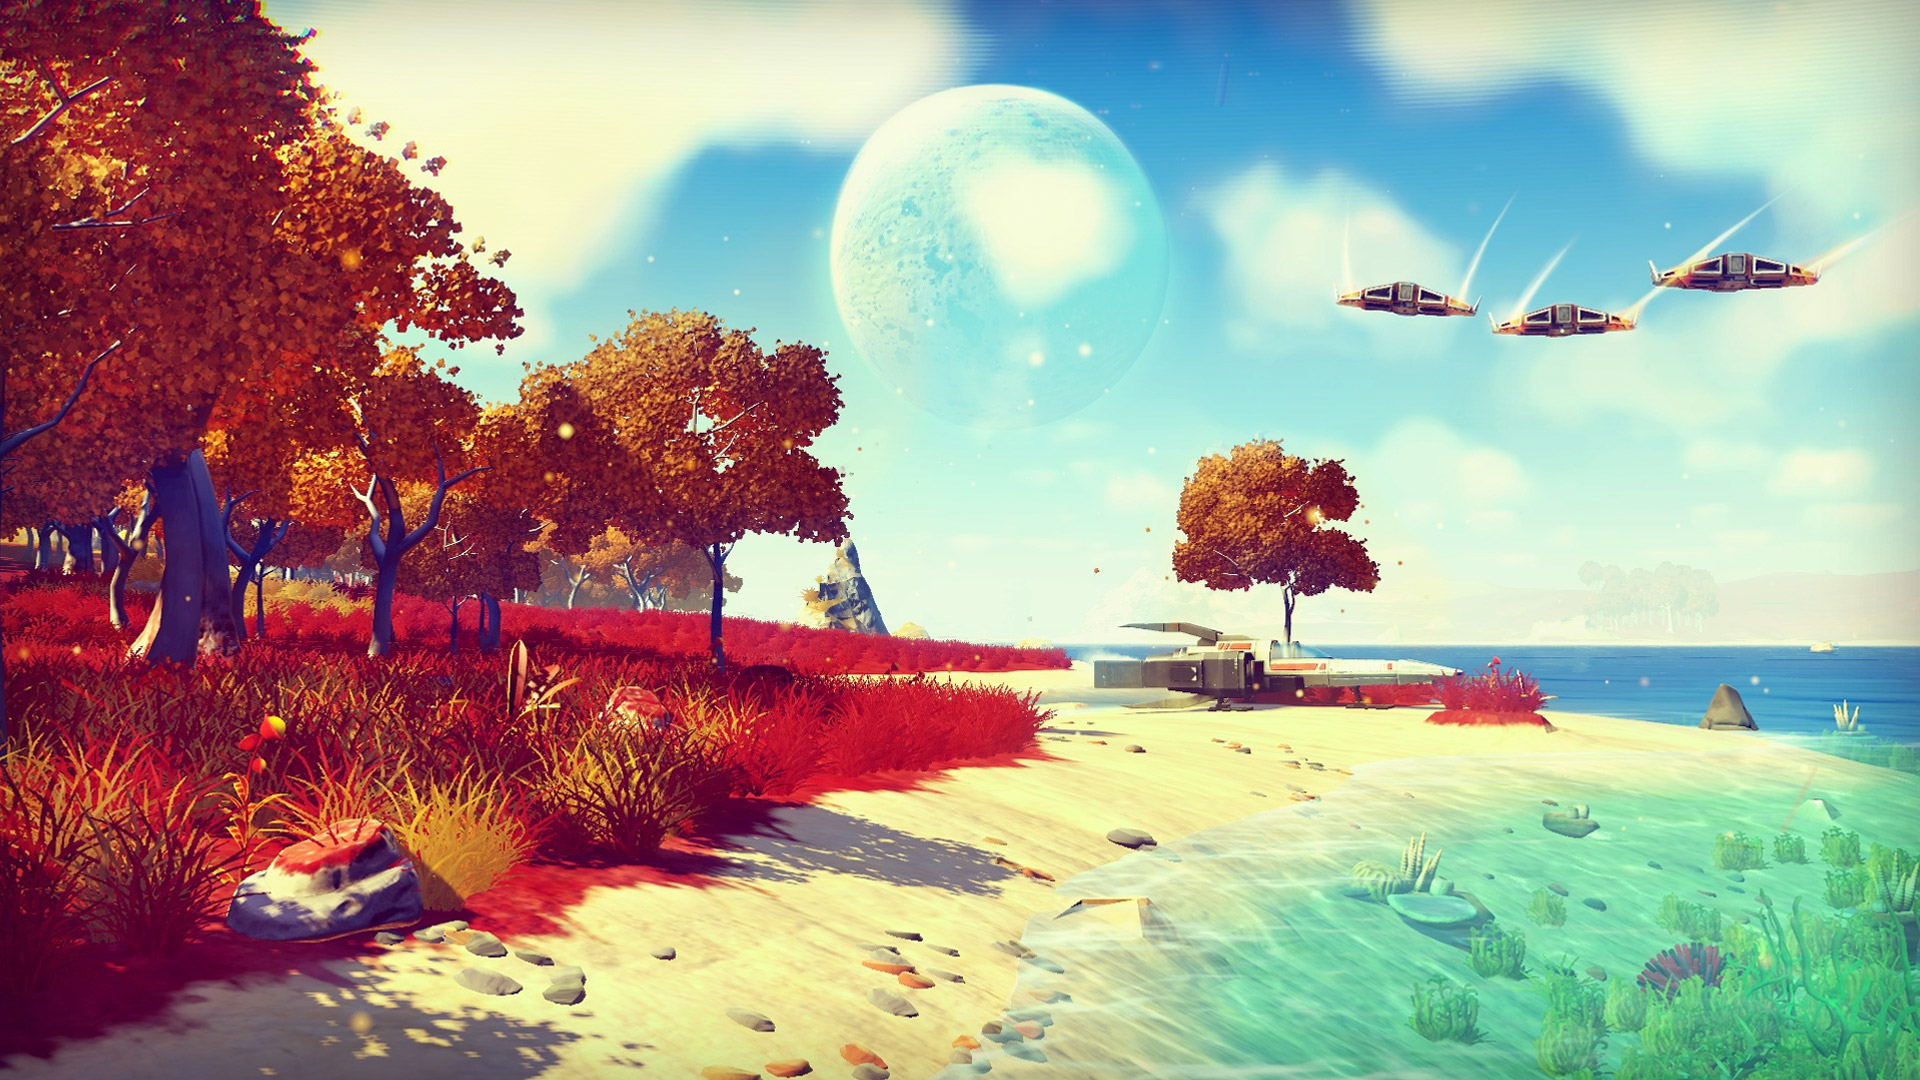 Game with watercolor - One Of The Most Highly Anticipated Games Of The Year No Man S Sky Is A Massive Open Ended Space Exploration Game That Promises An Unlimited Universe Of